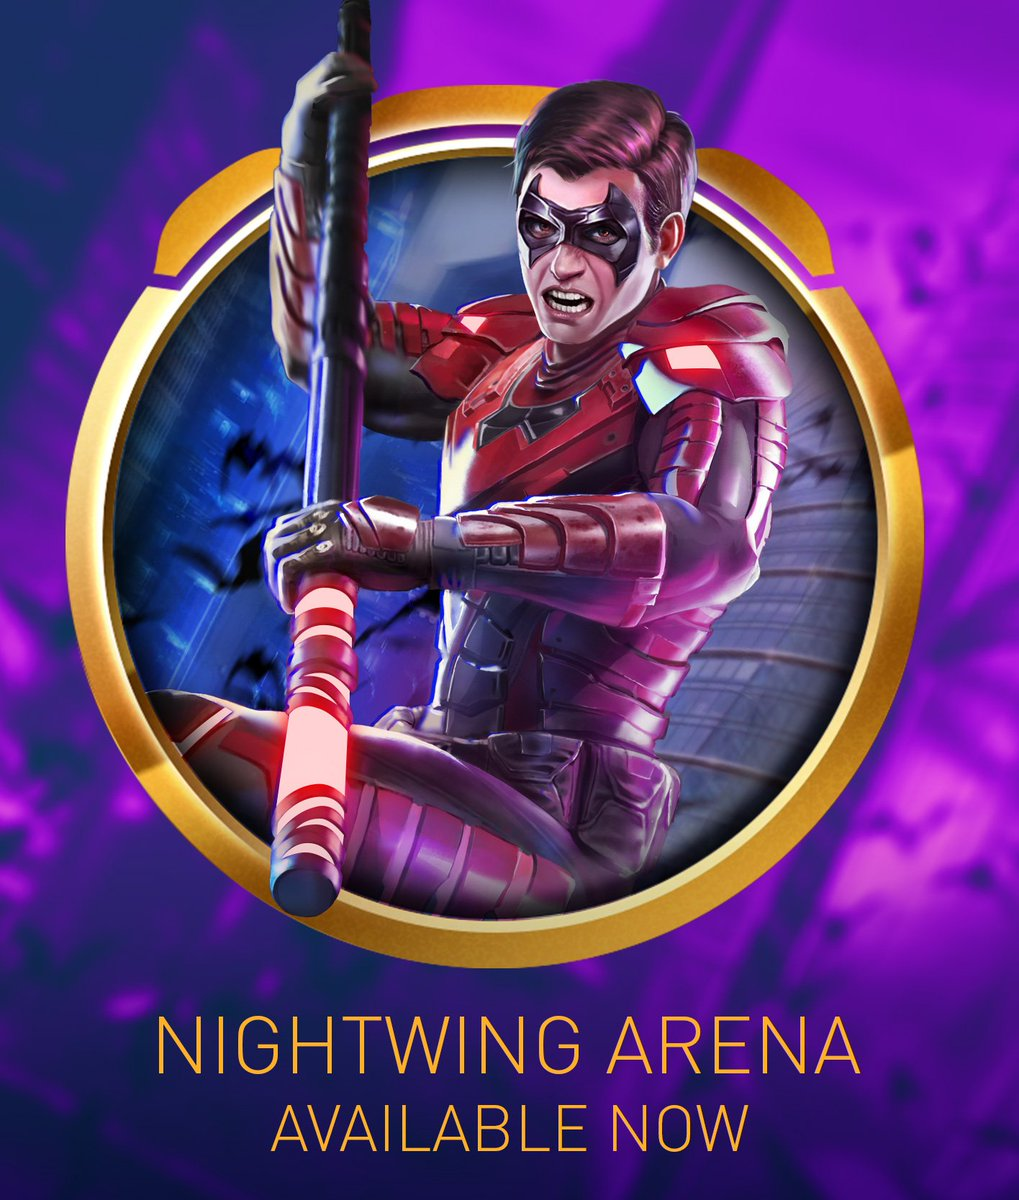 Injustice 2 Mobile On Twitter The Nightwing Arena Season And A Batman Ninja Harley Quinn Invasion Have Begun Use Nightwing S Passive Staff Of Grayson To Generate Power Quickly And Use The Power